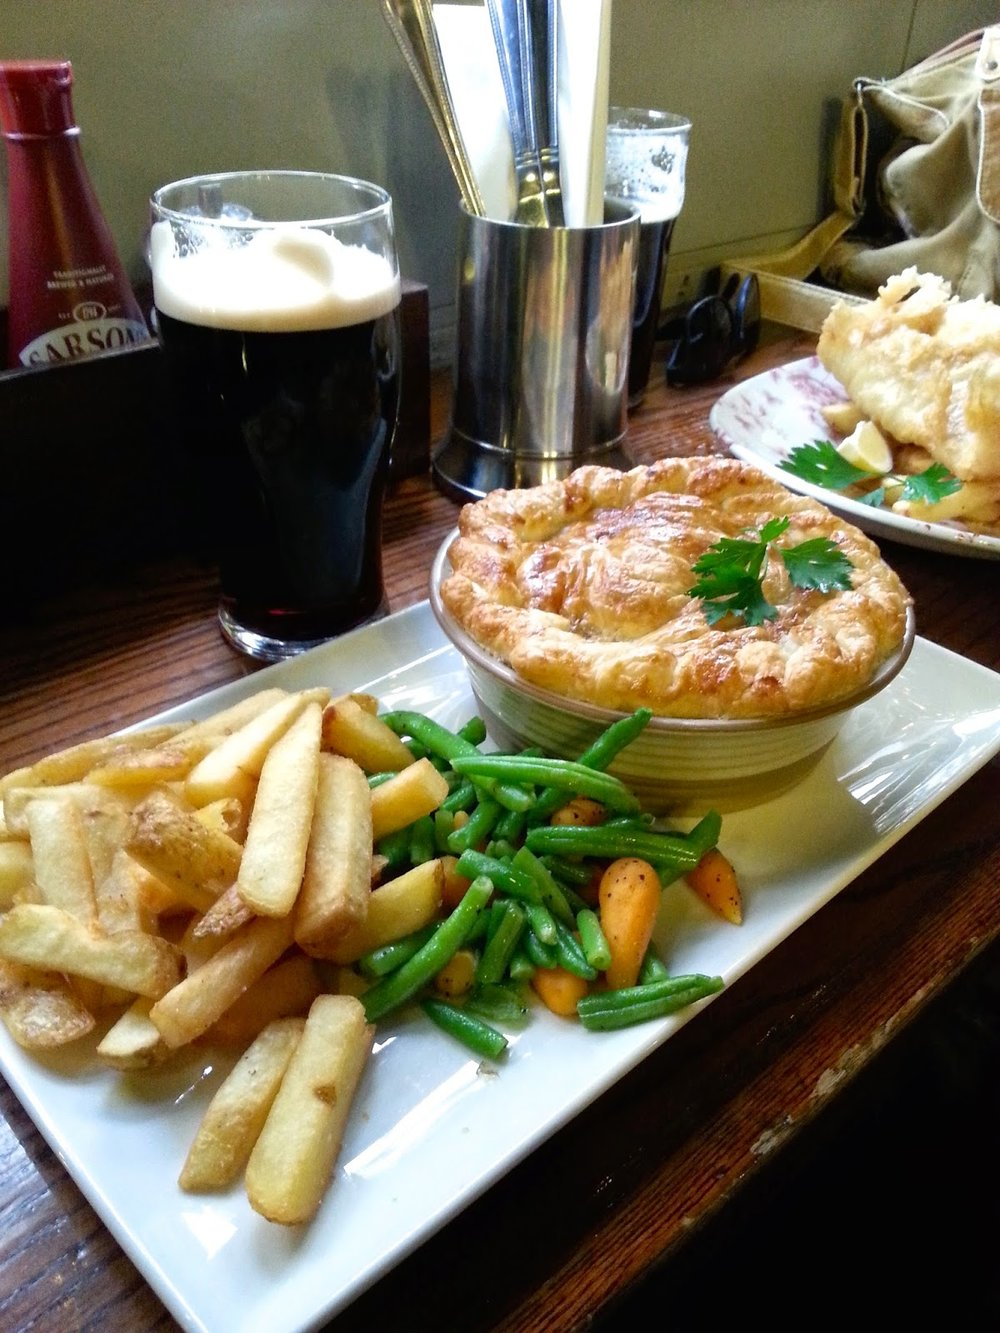 Pie and chips and a Guinness. Happy girl.